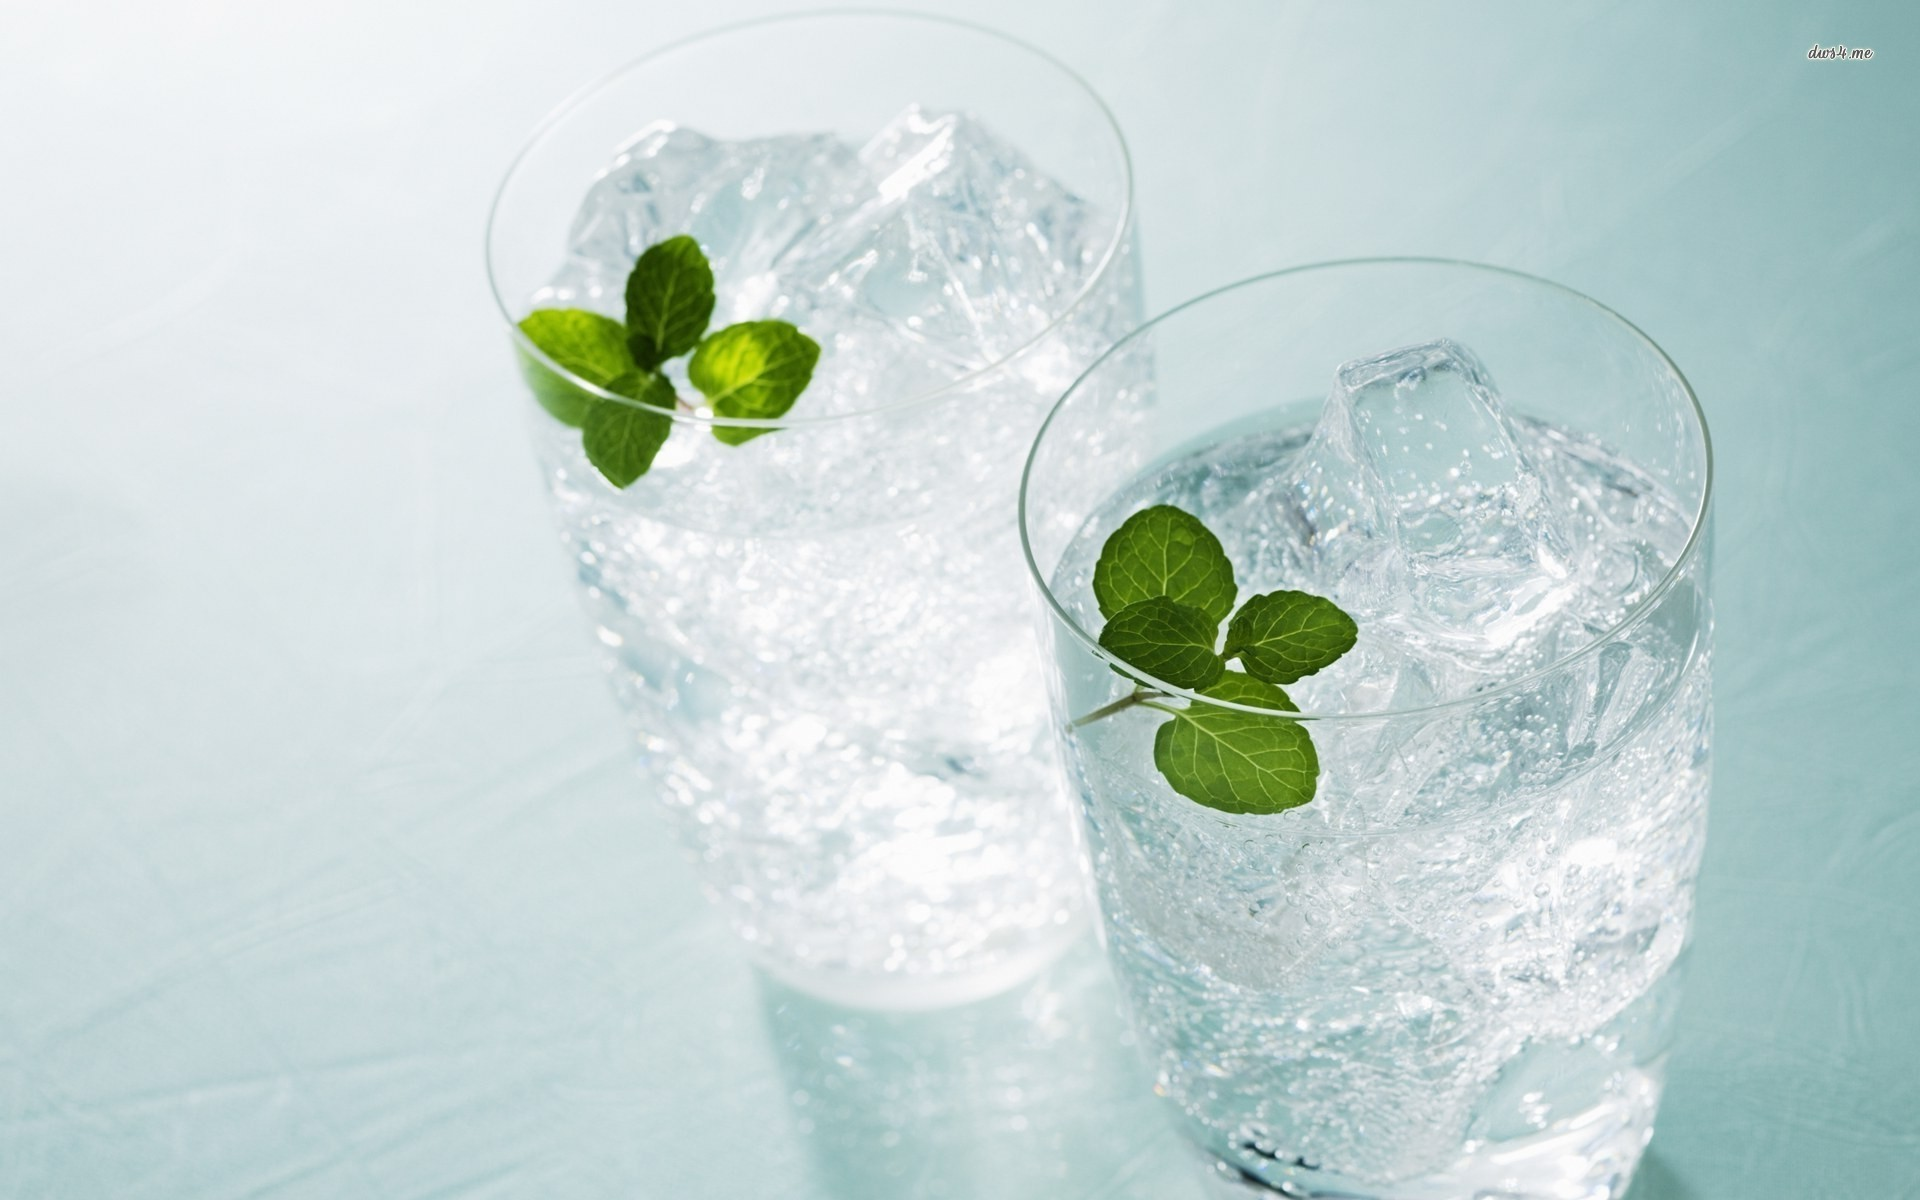 minty-water-ice-cube-glass-photography-1920x1200-wallpaper23387